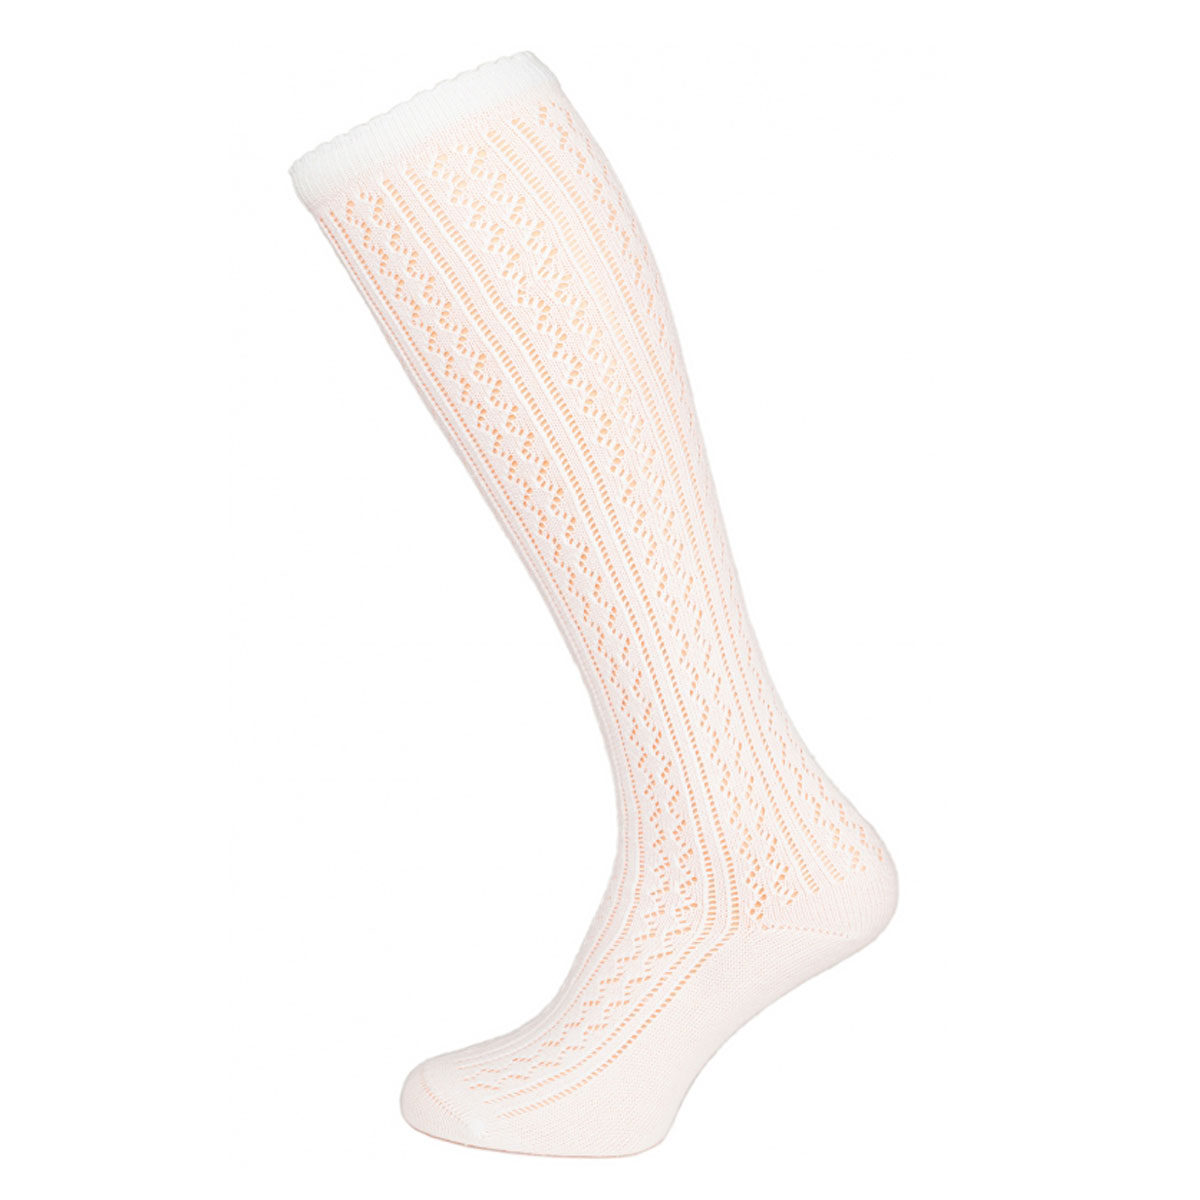 OFF WHITE FEMALE SOCKS WITH WHITE LACE